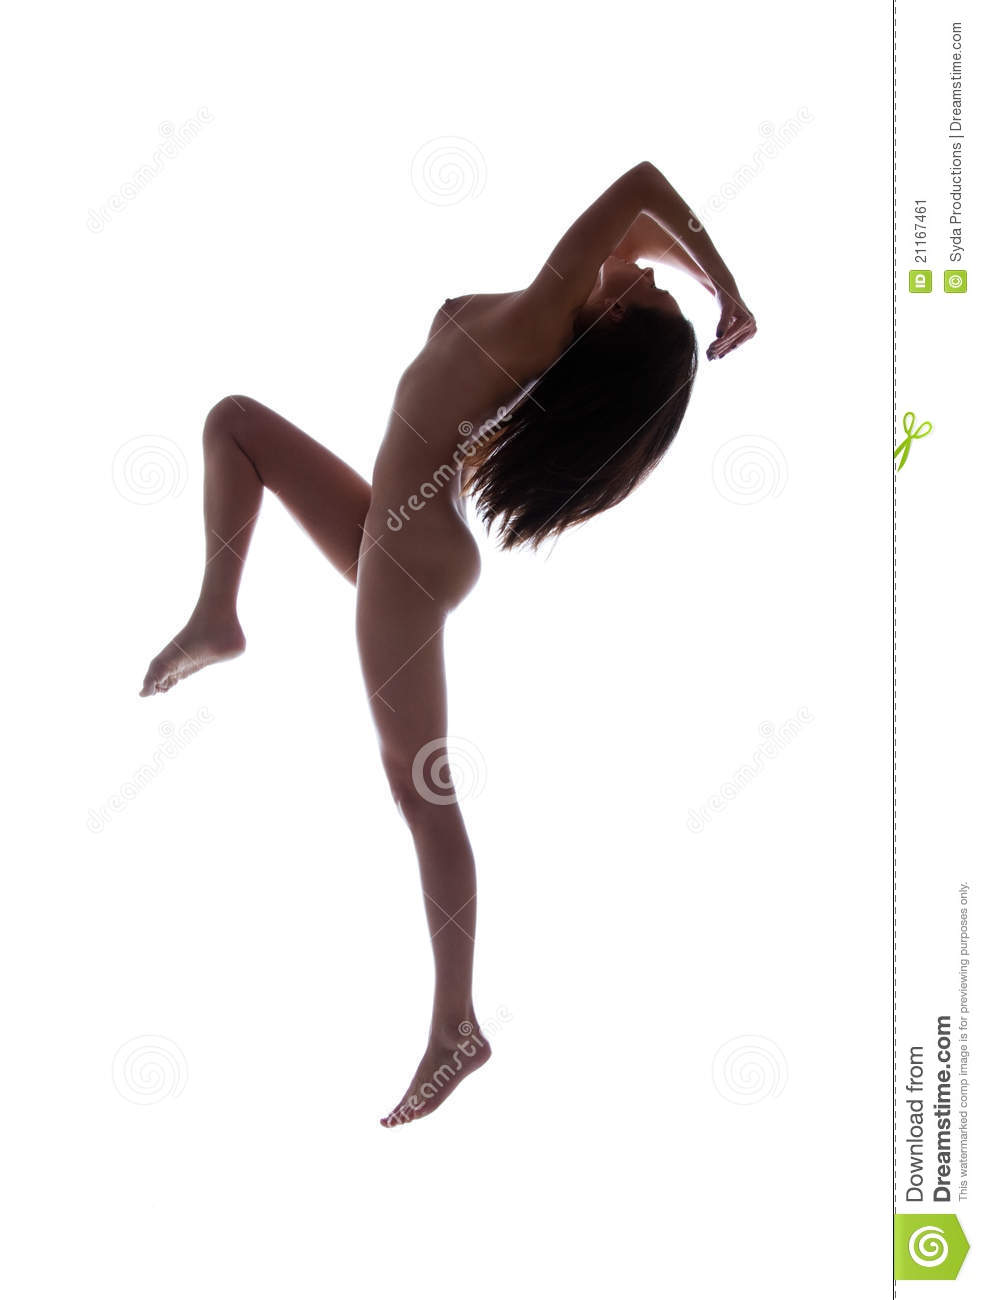 Precisely know, dvd silhouette of naked women dancing